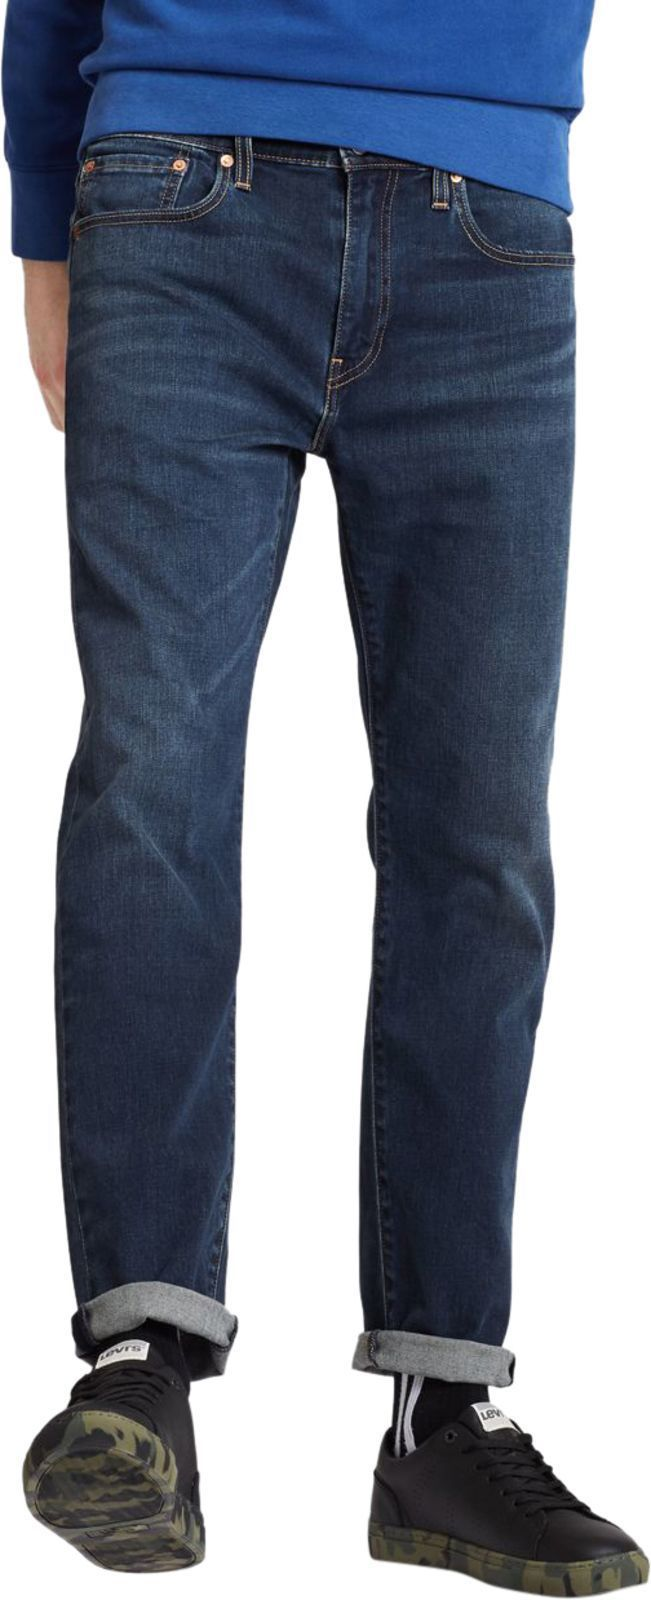 Levi's 502 Regular Taper Fit Denim Jeans